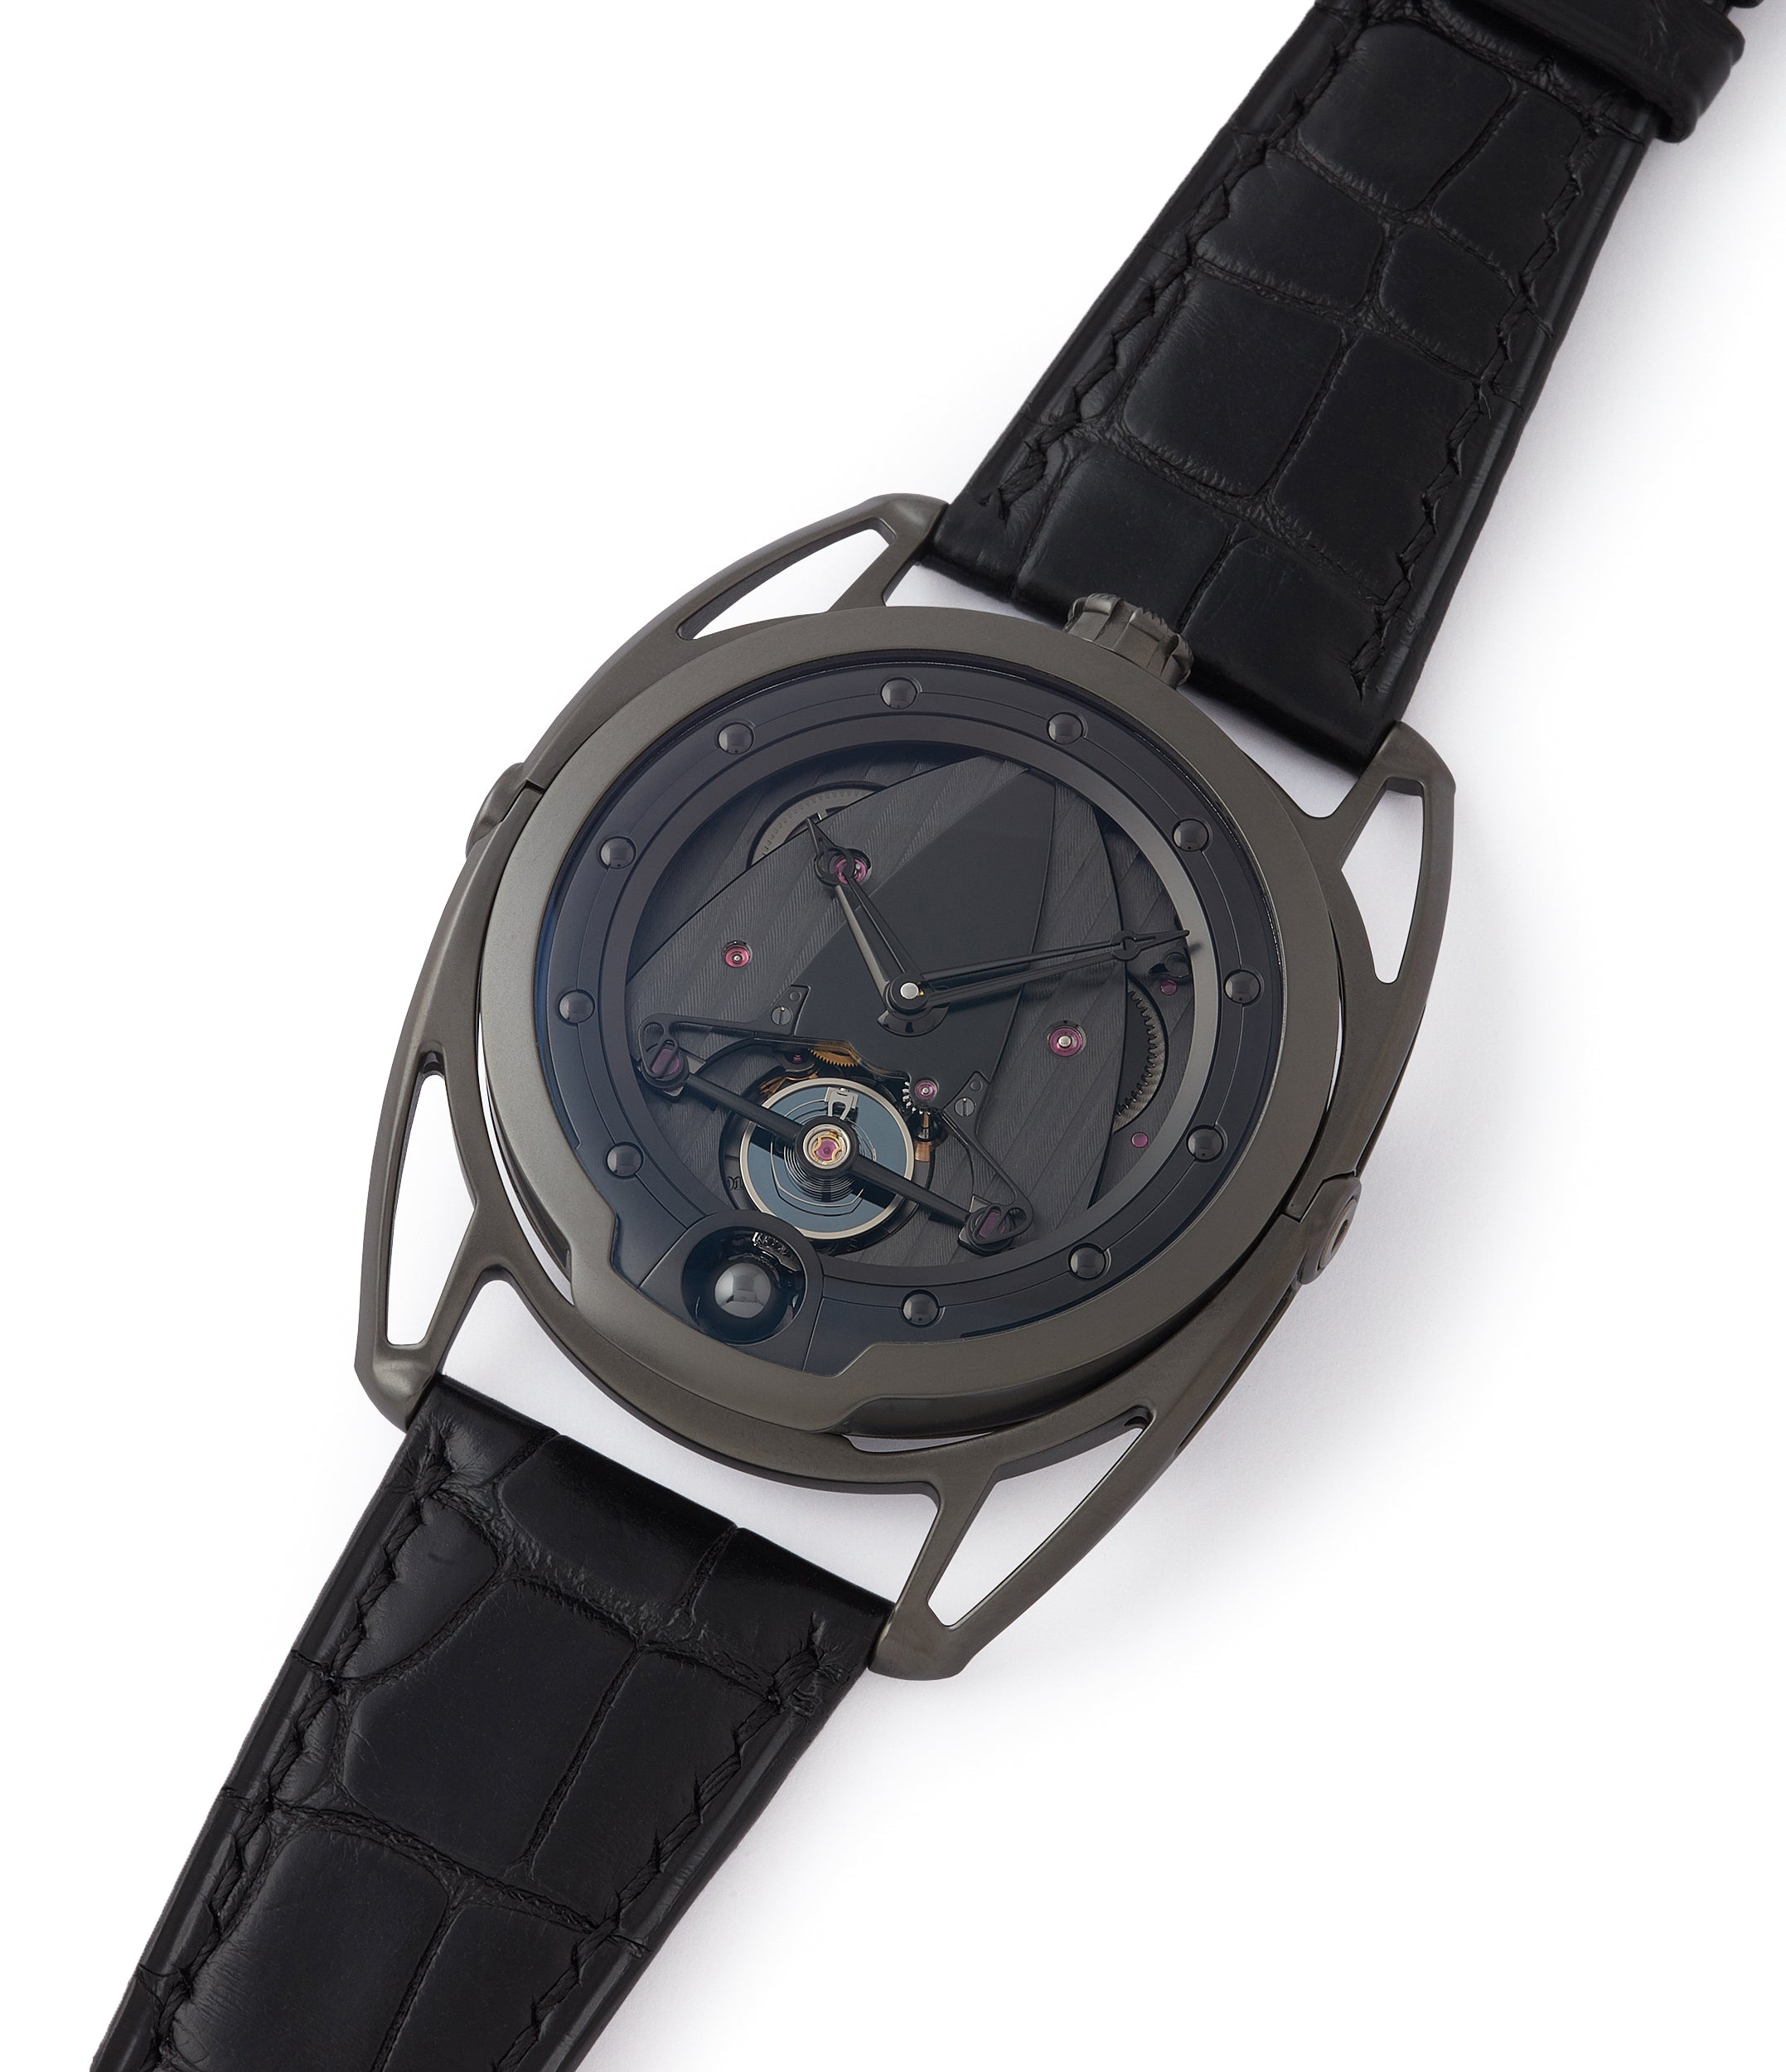 shop De Bethune DB28 Dark Shadows independent watchmaker for sale online at A Collected Man London UK specilaist of rare watches